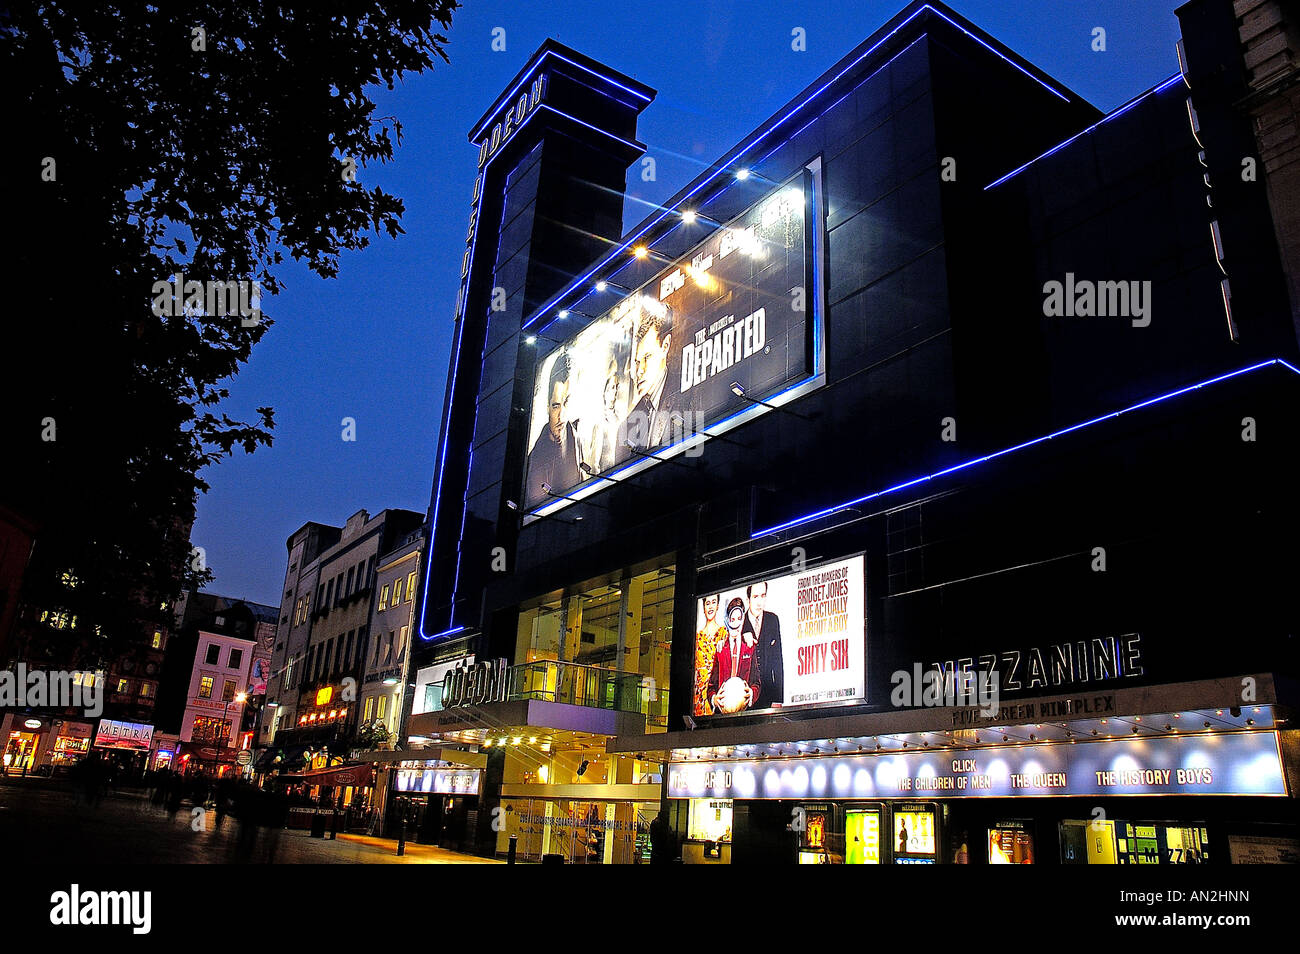 Leicester Square at Night - Stock Image